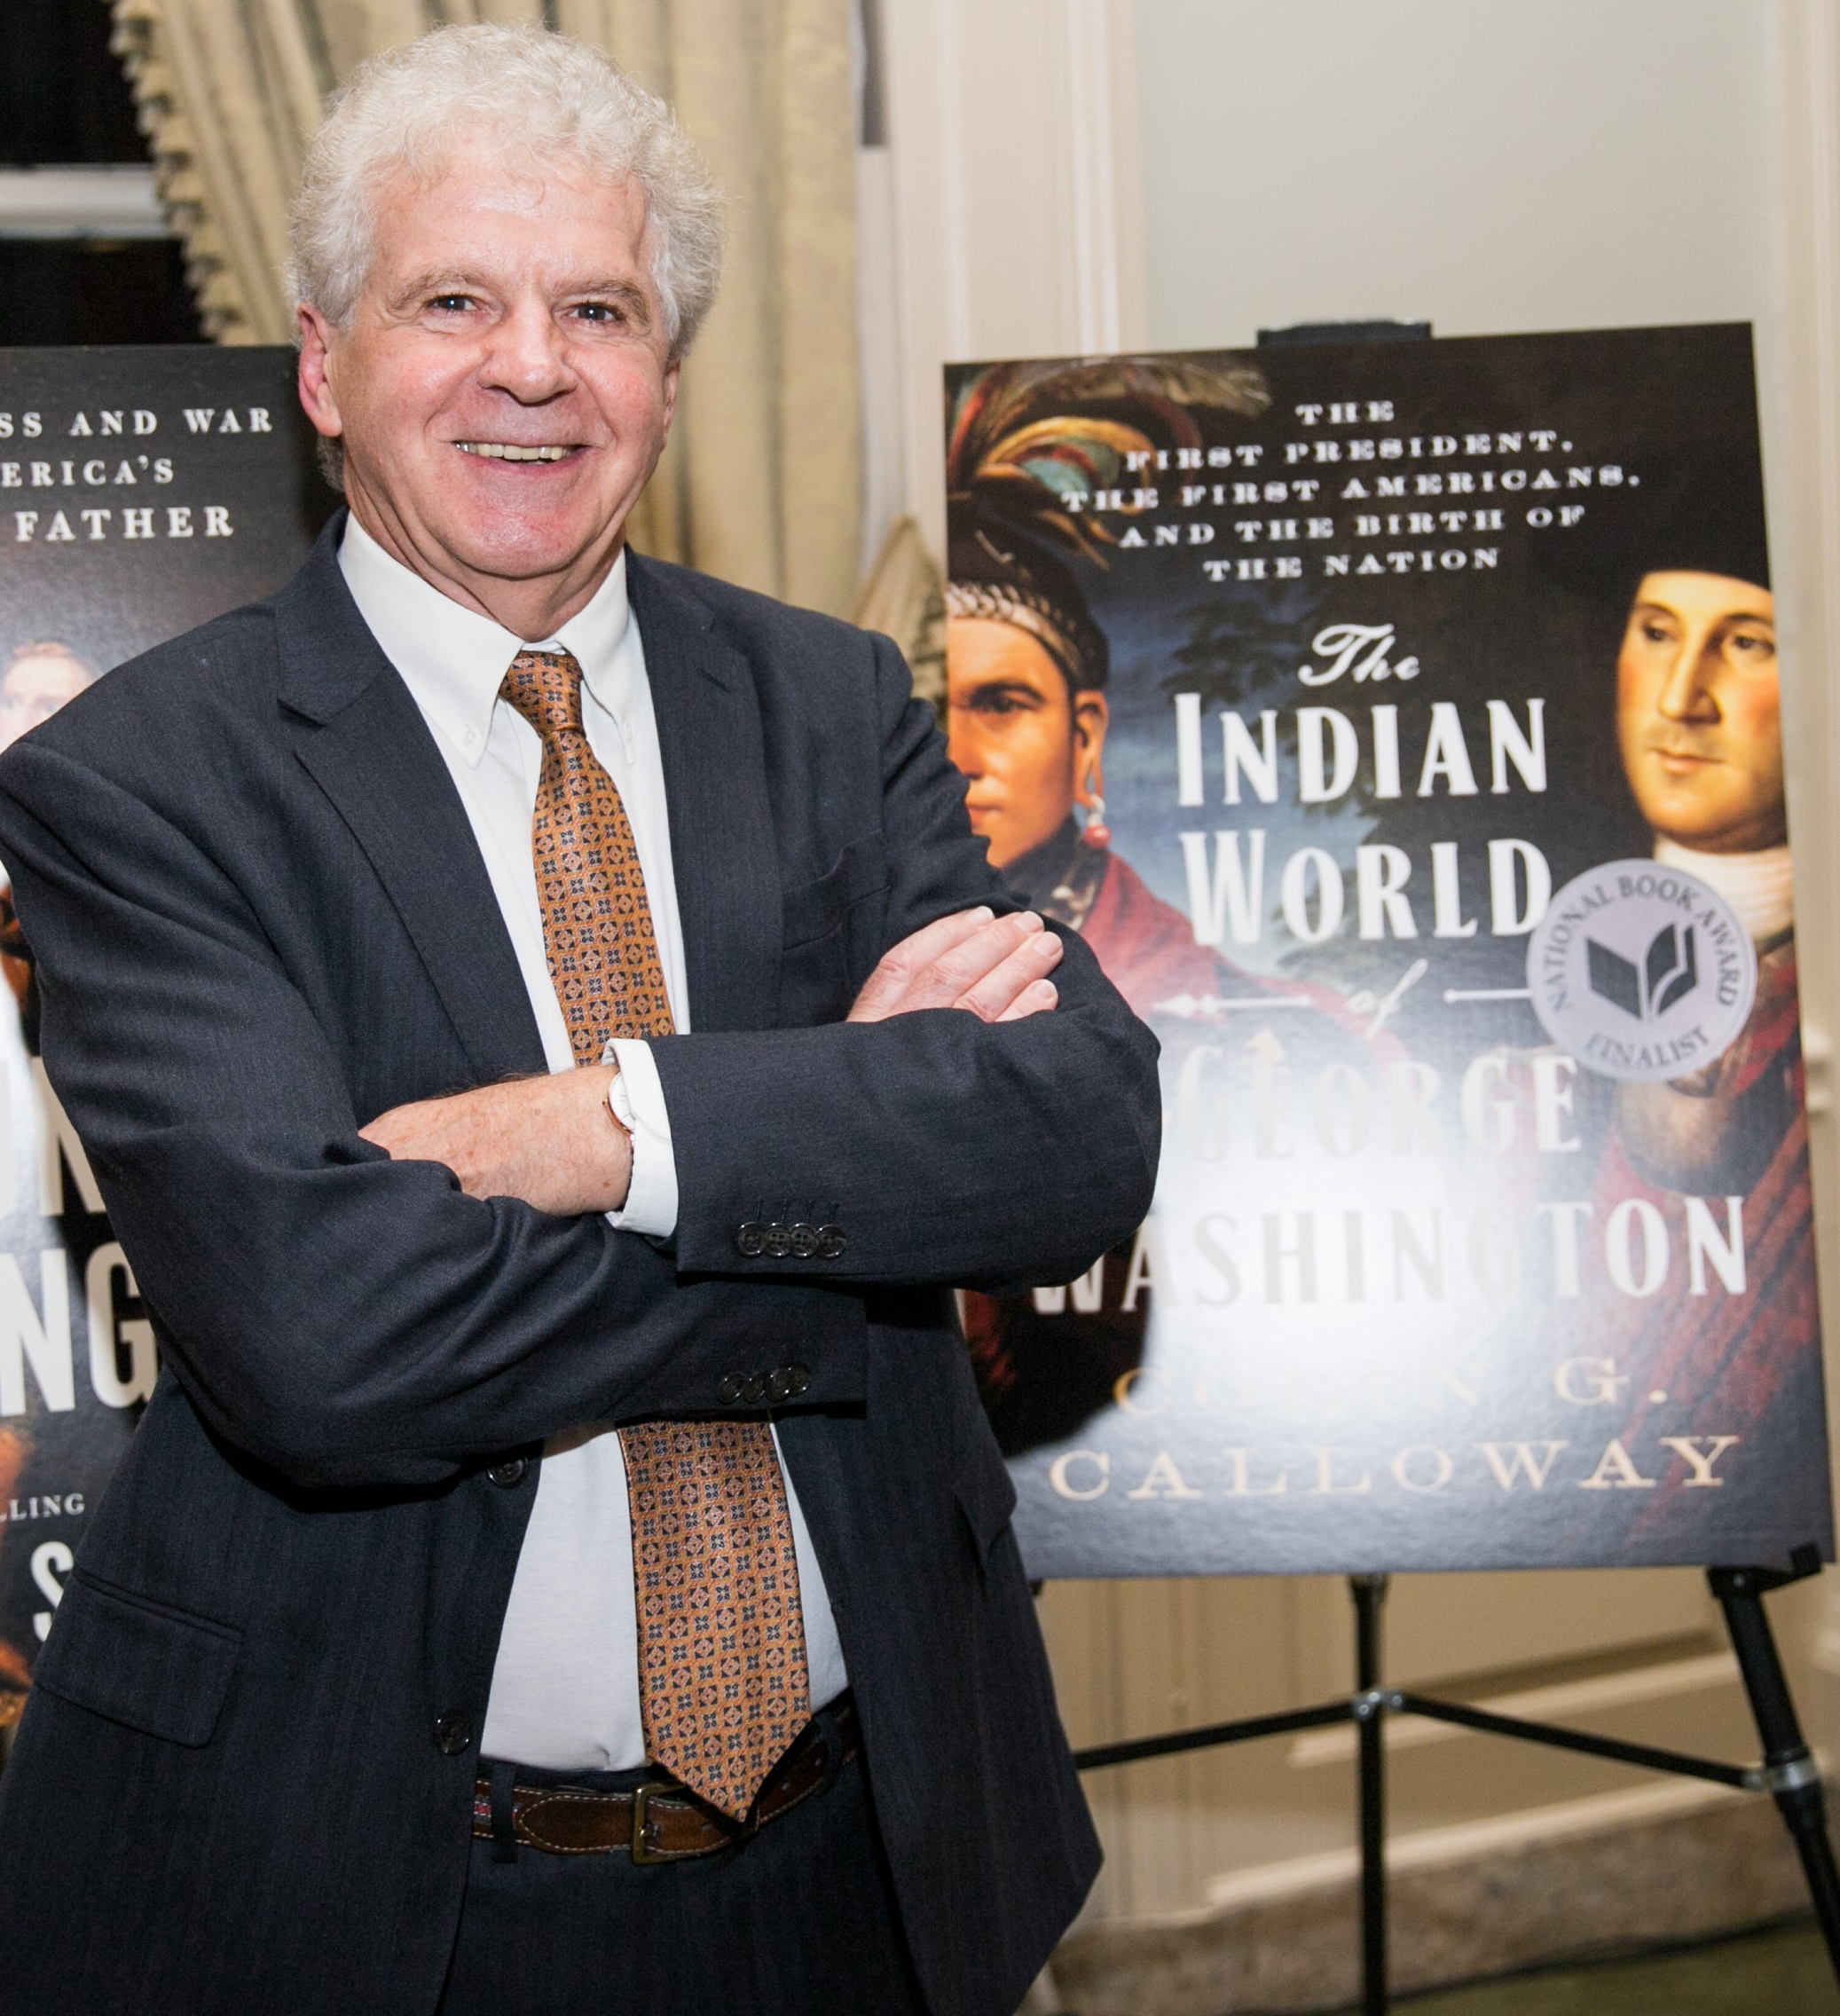 Professor Colin Calloway won the 2019 George Washington Prize for his book <i>The Indian World of George Washington</i>.